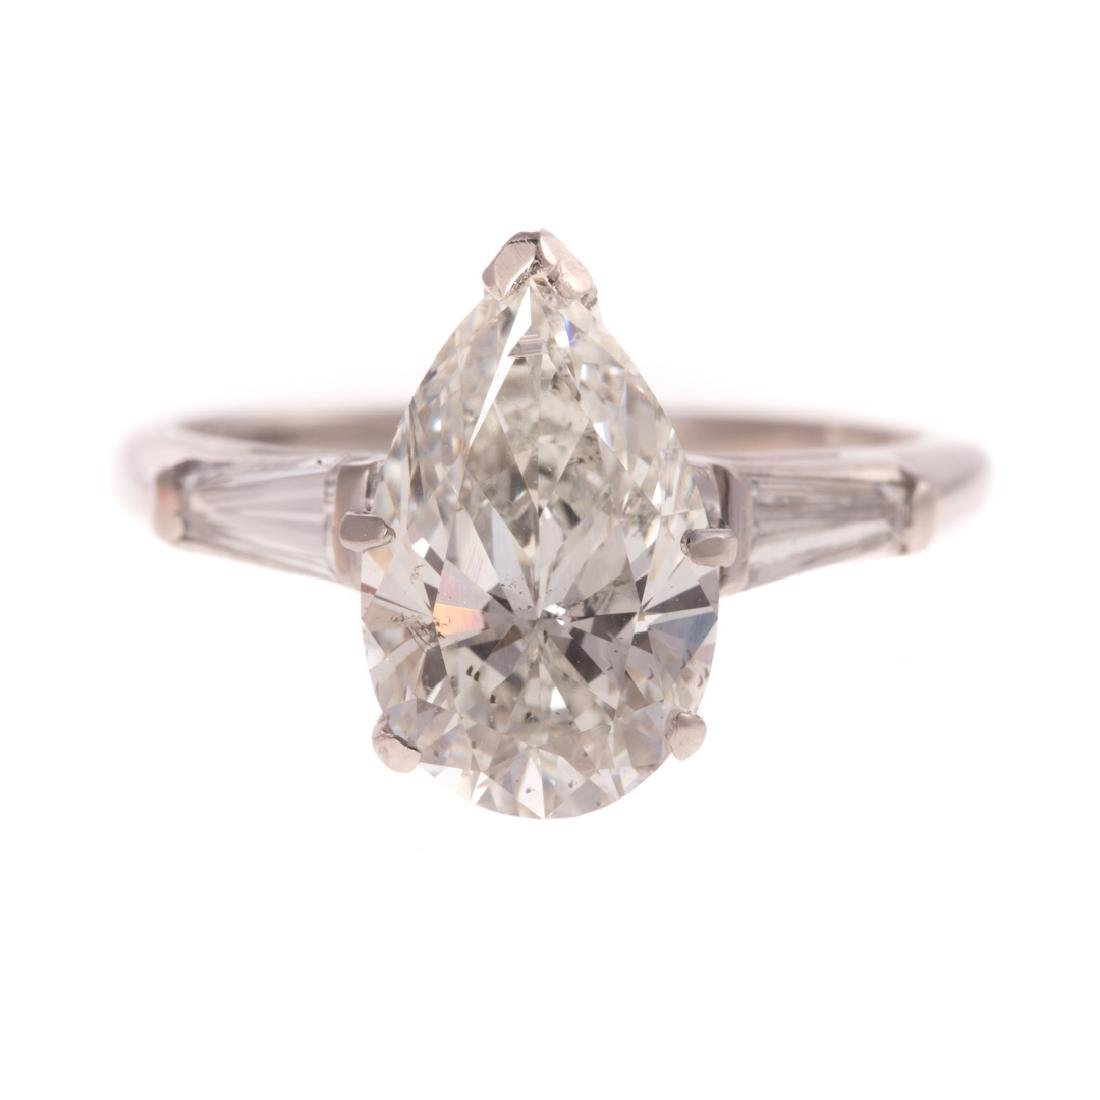 A 2.53ct Pear Shape Diamond Engagement Ring